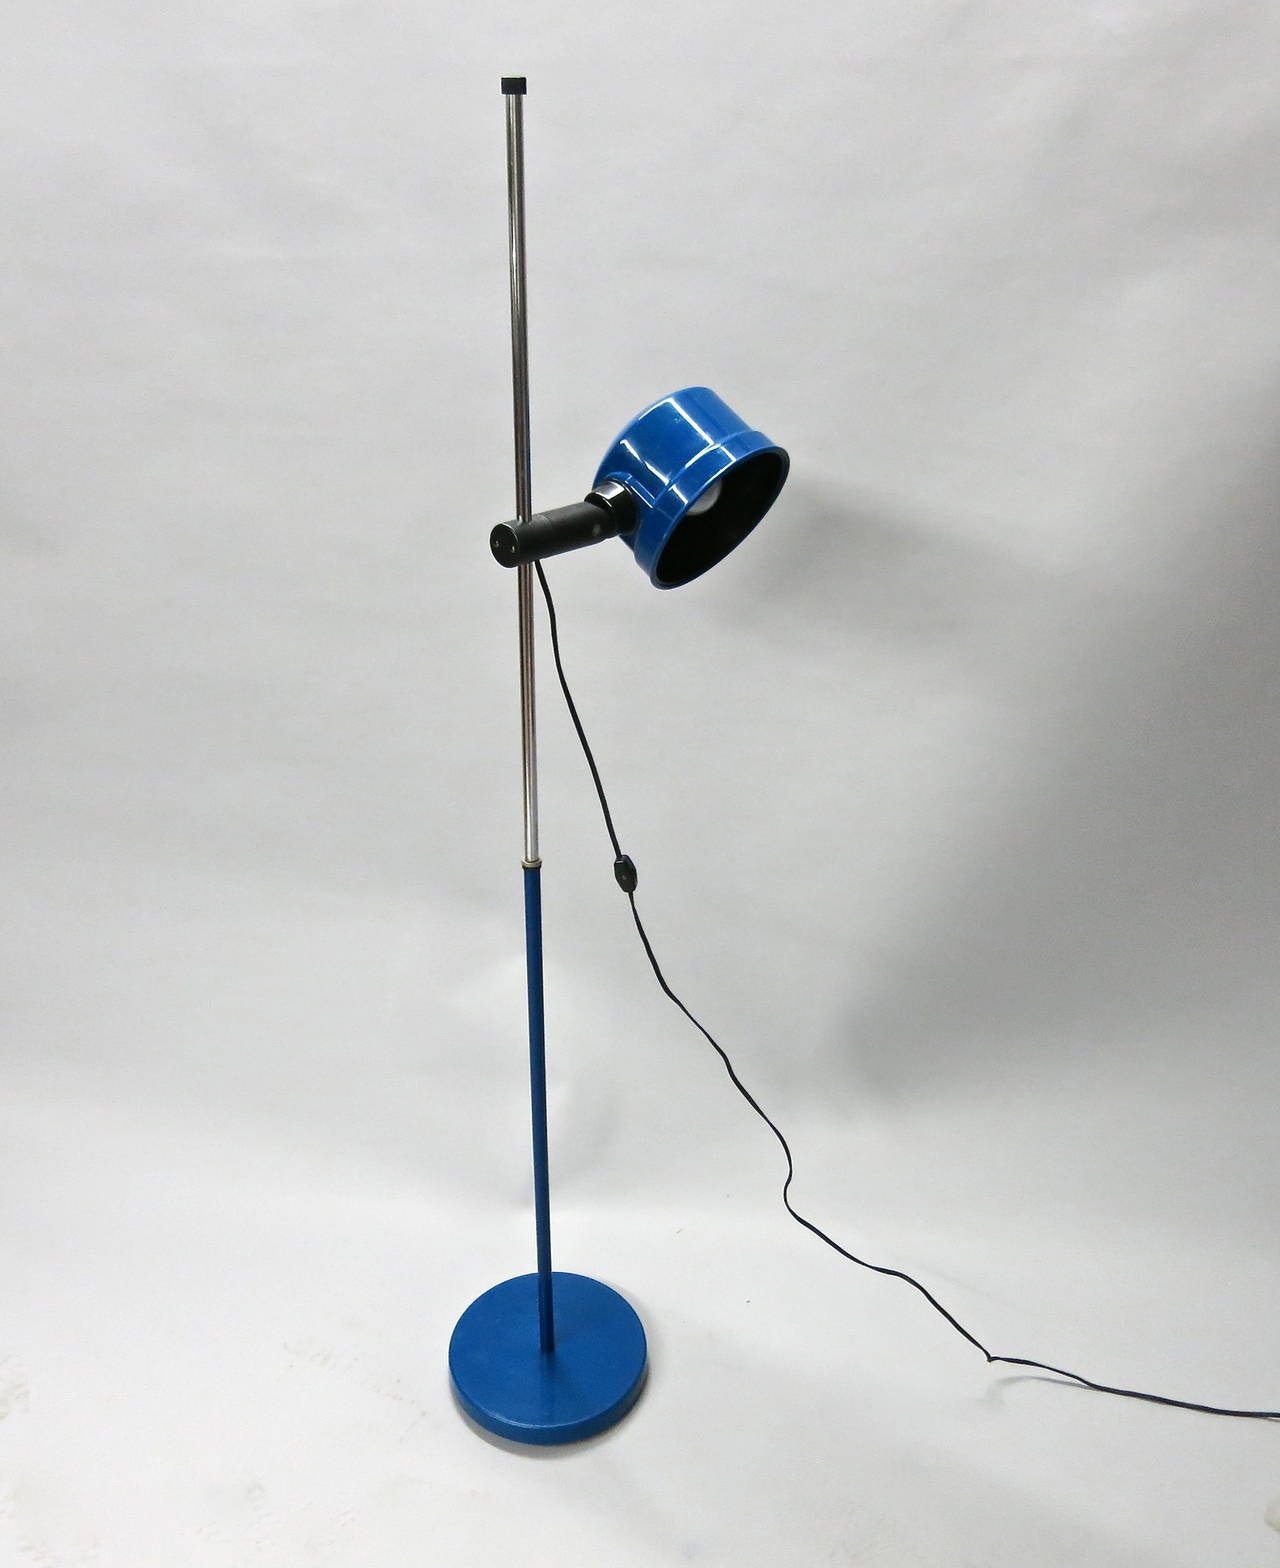 standing floor lamp by kovacs circa 1960 made in usa at 1stdibs. Black Bedroom Furniture Sets. Home Design Ideas